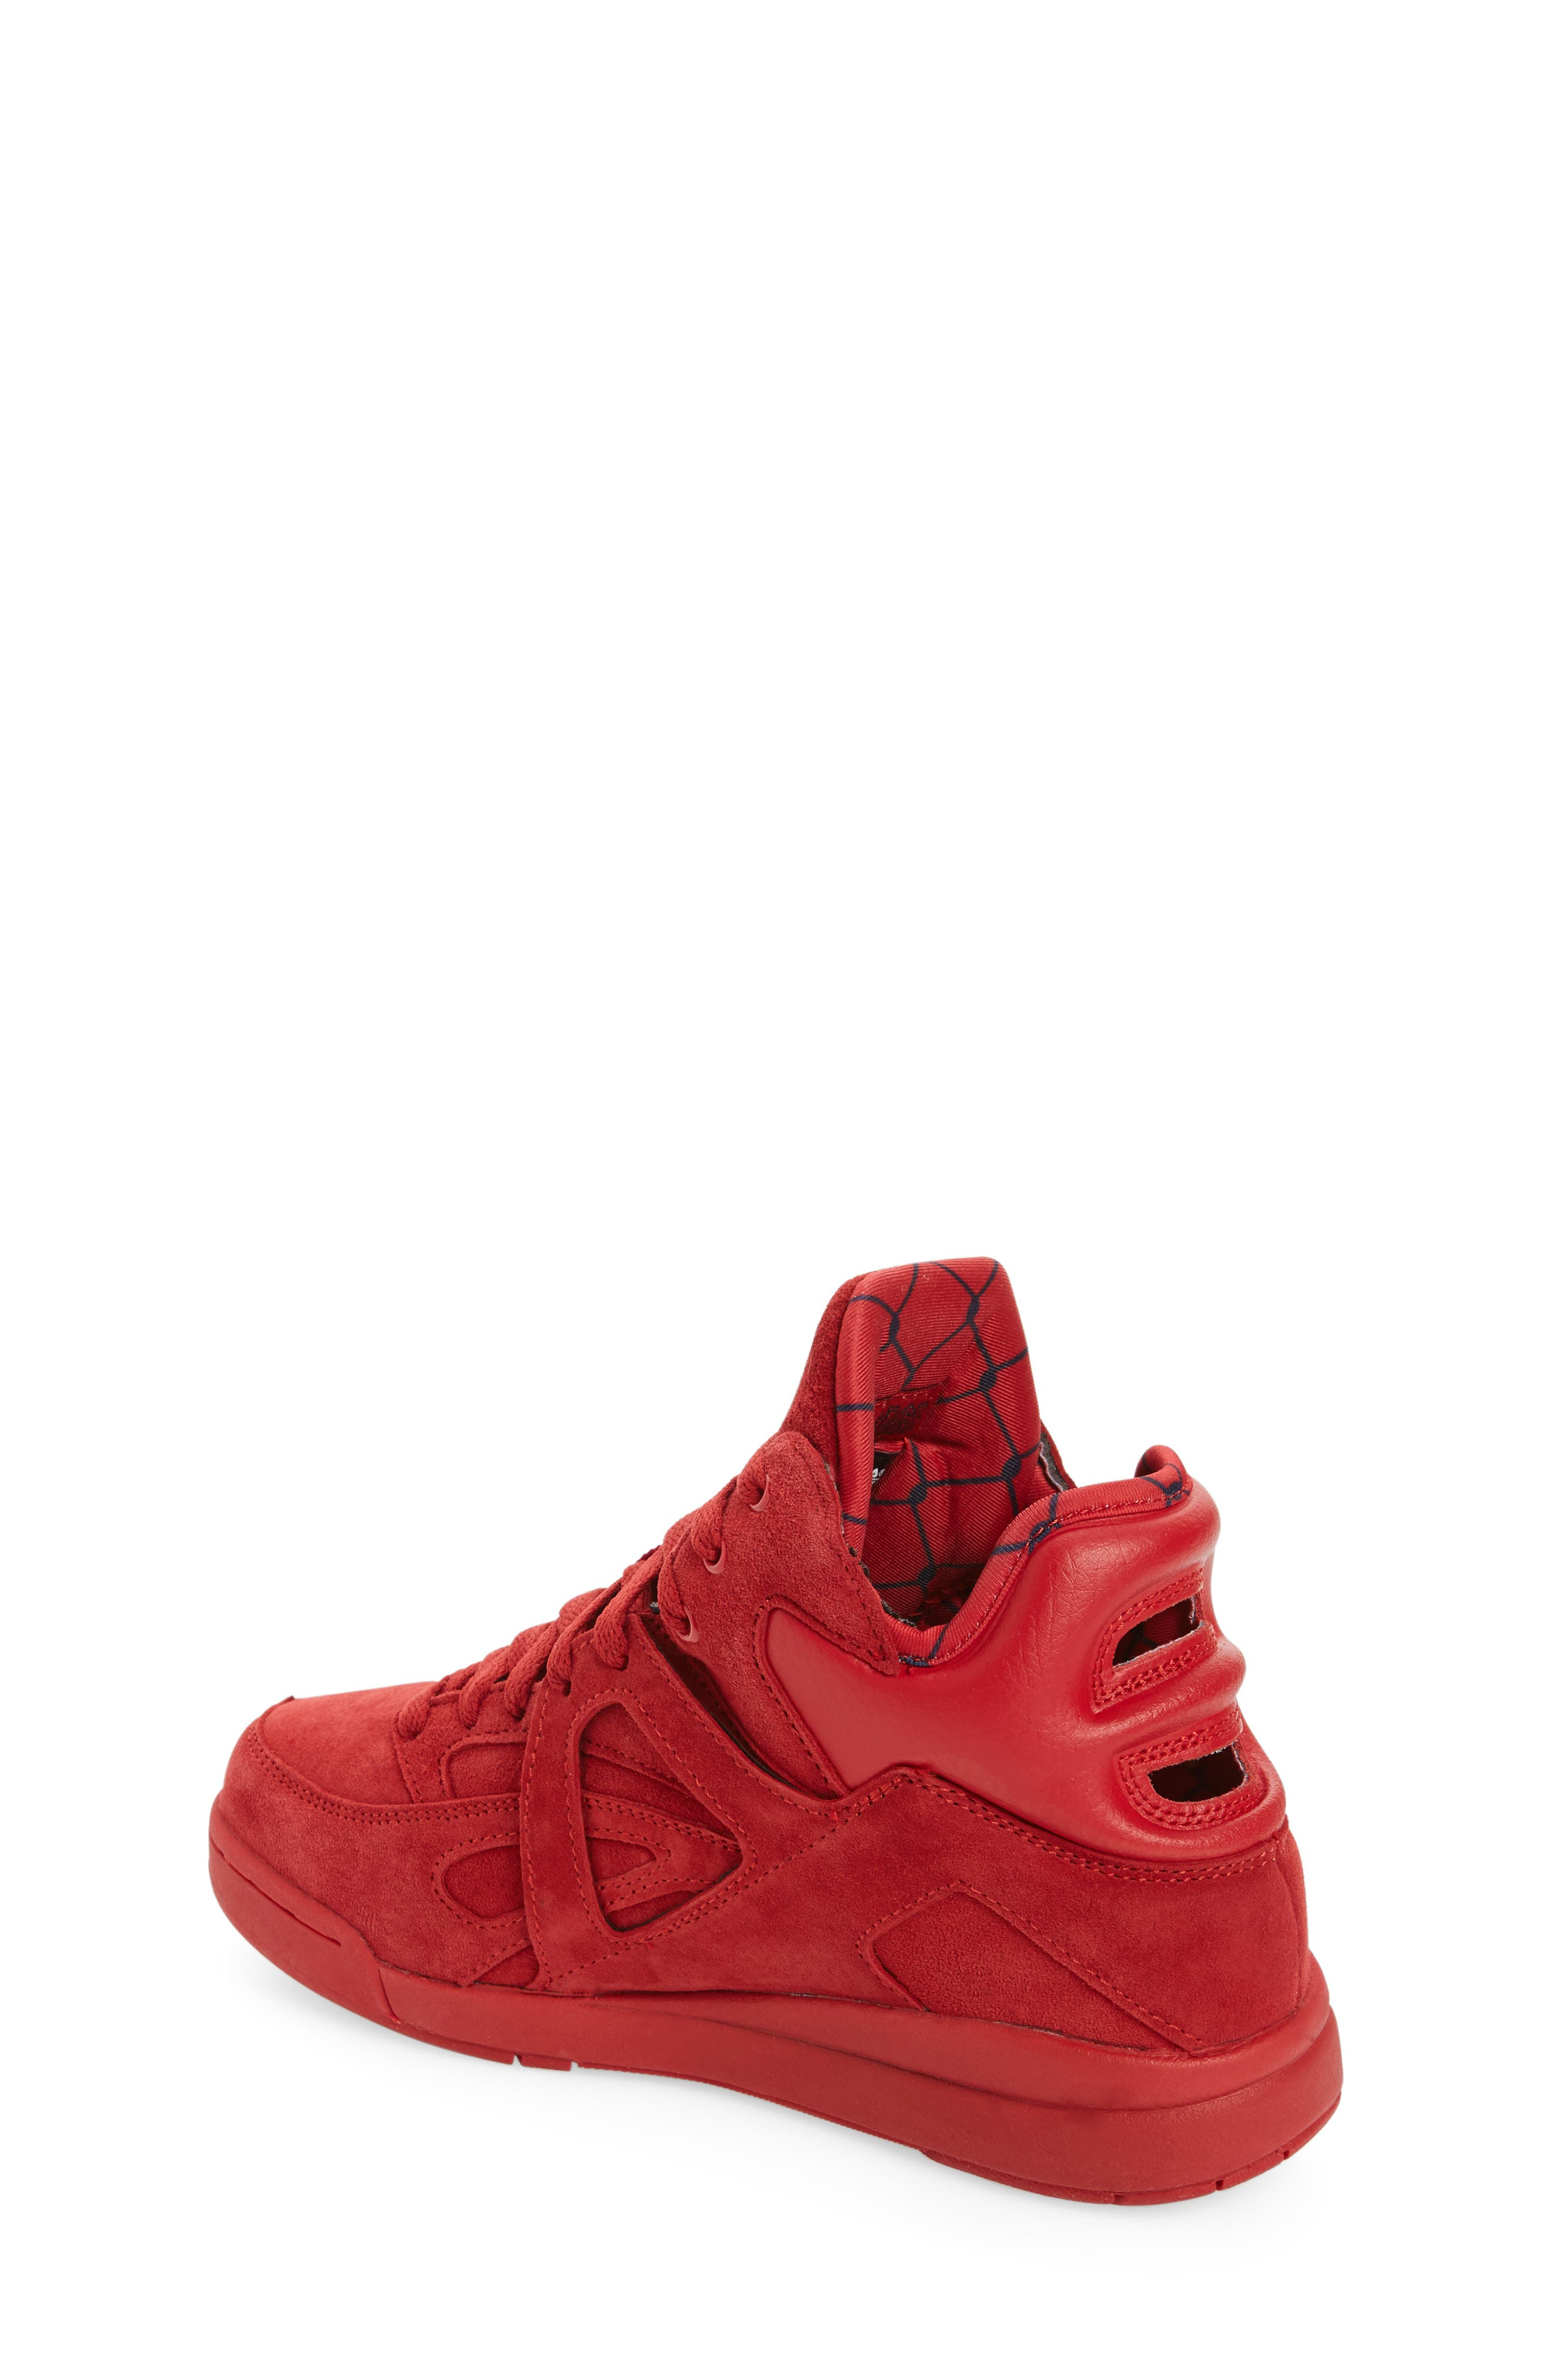 FILA, The Cage High Top Sneaker, Alternate thumbnail 2, color, RED SUEDE